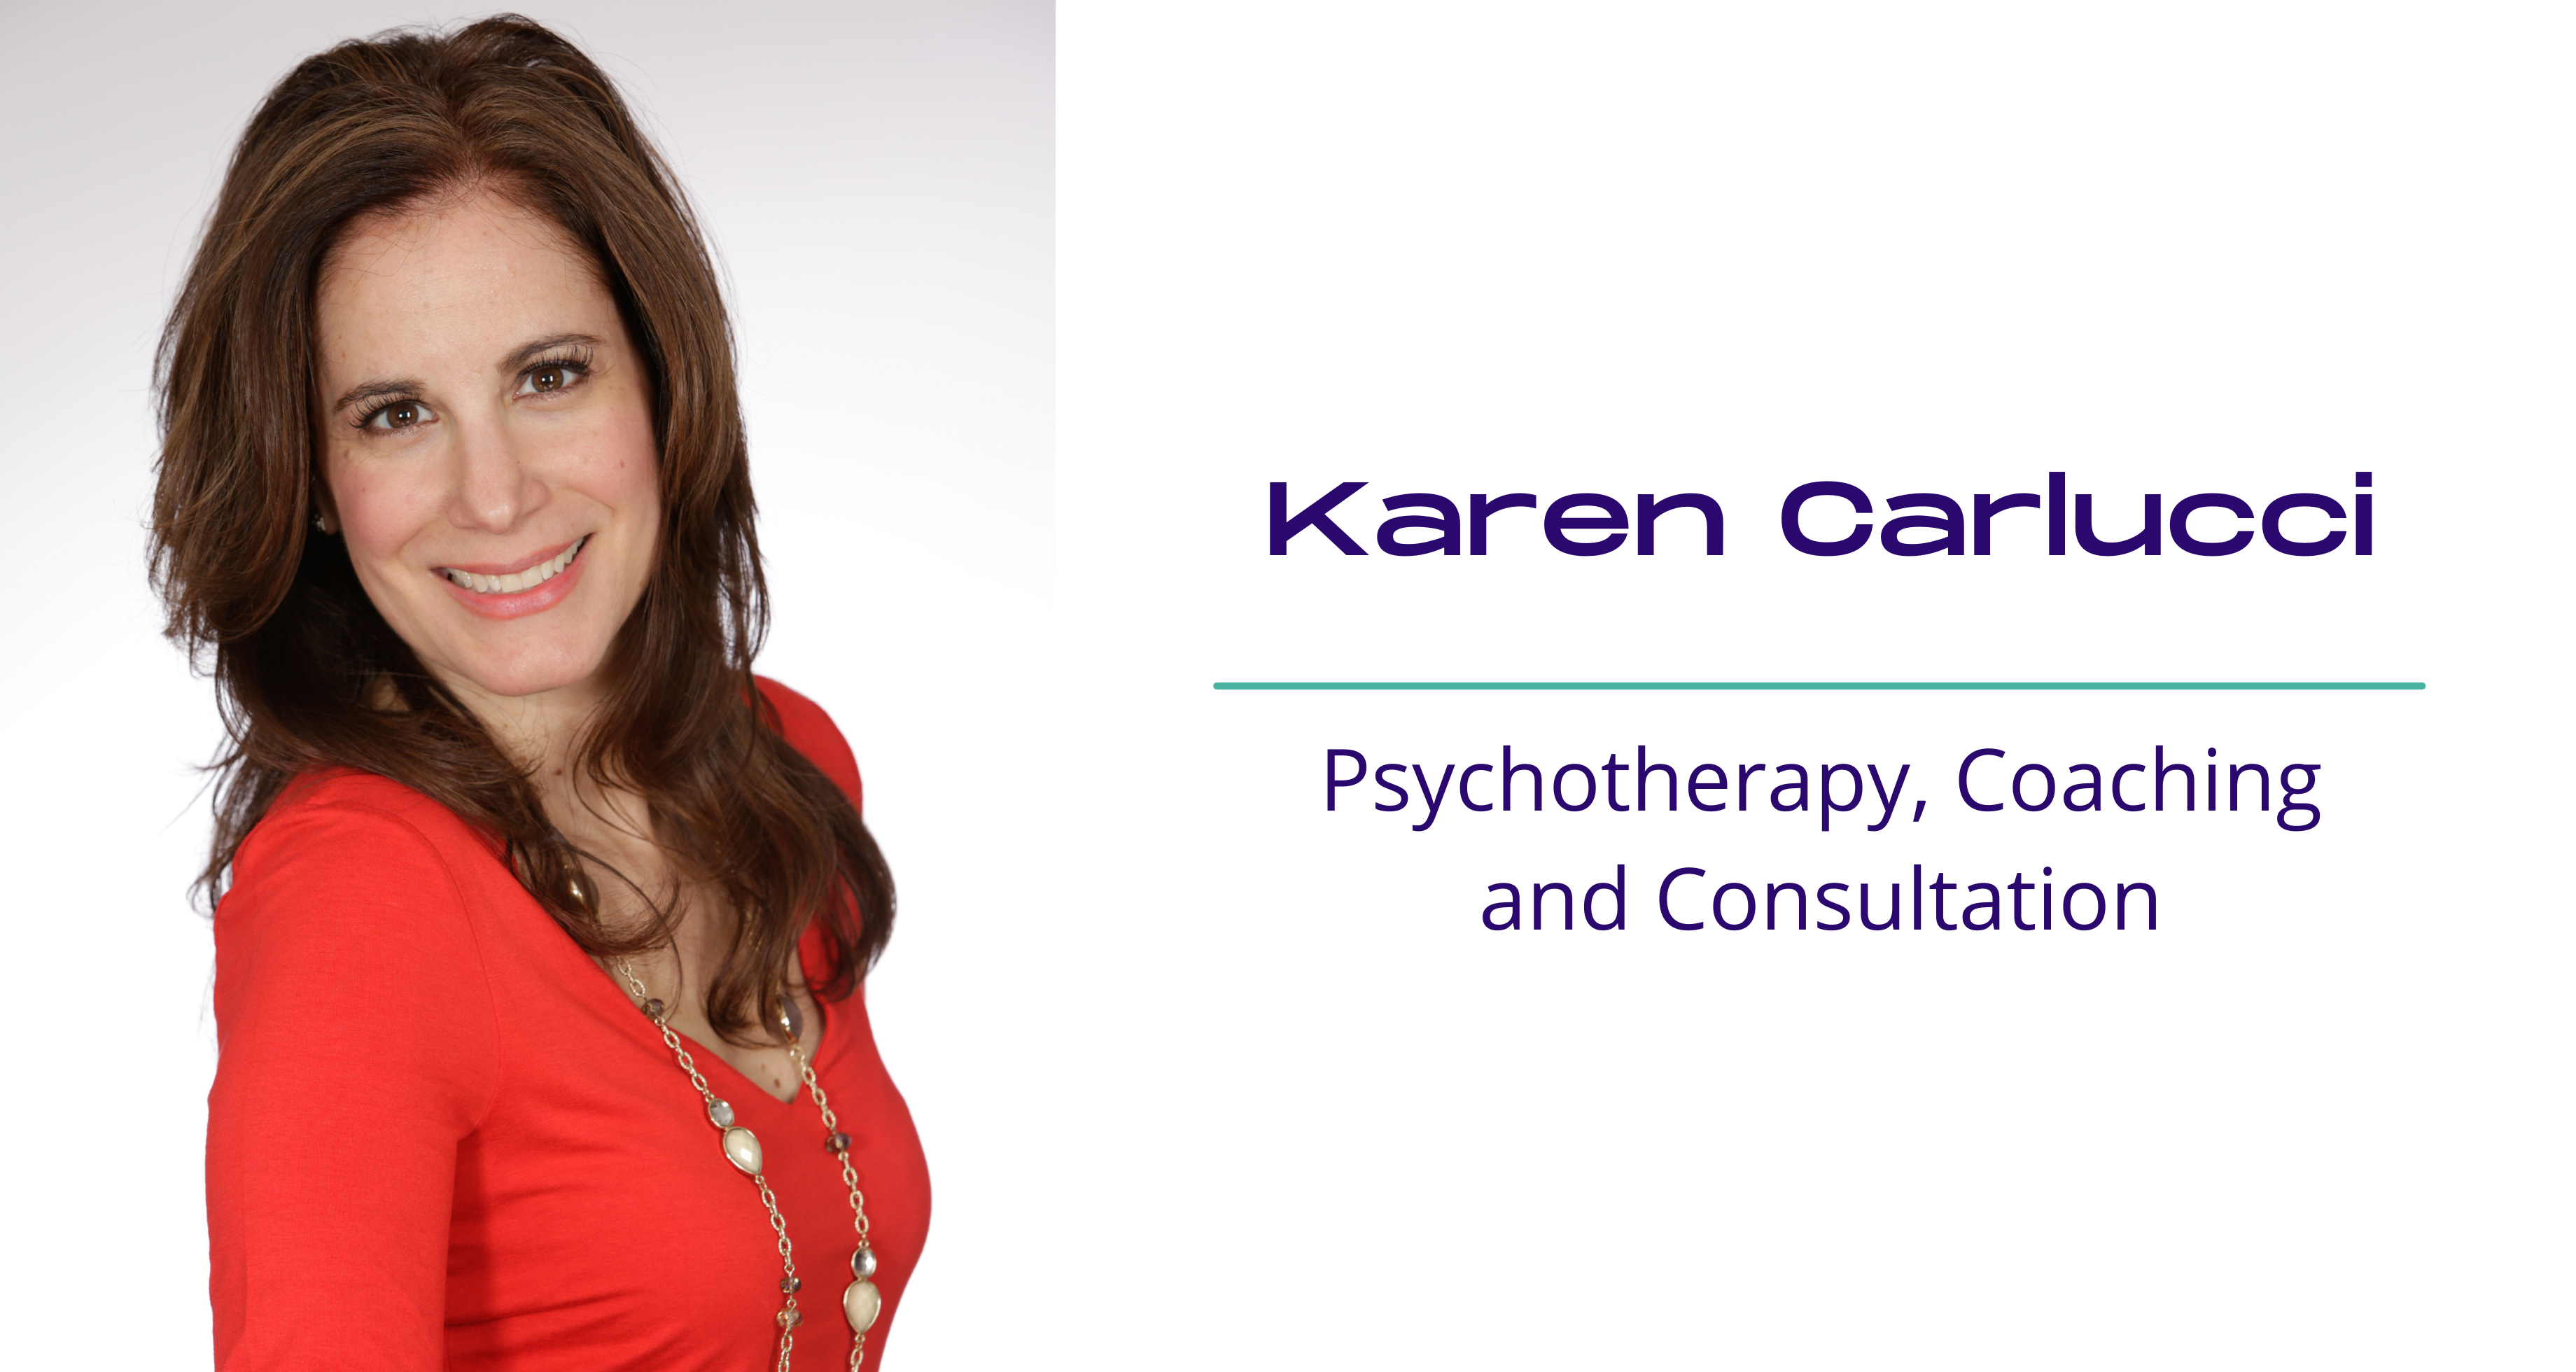 Karen M. Carlucci – Psychotherapy, Coaching and Consultation